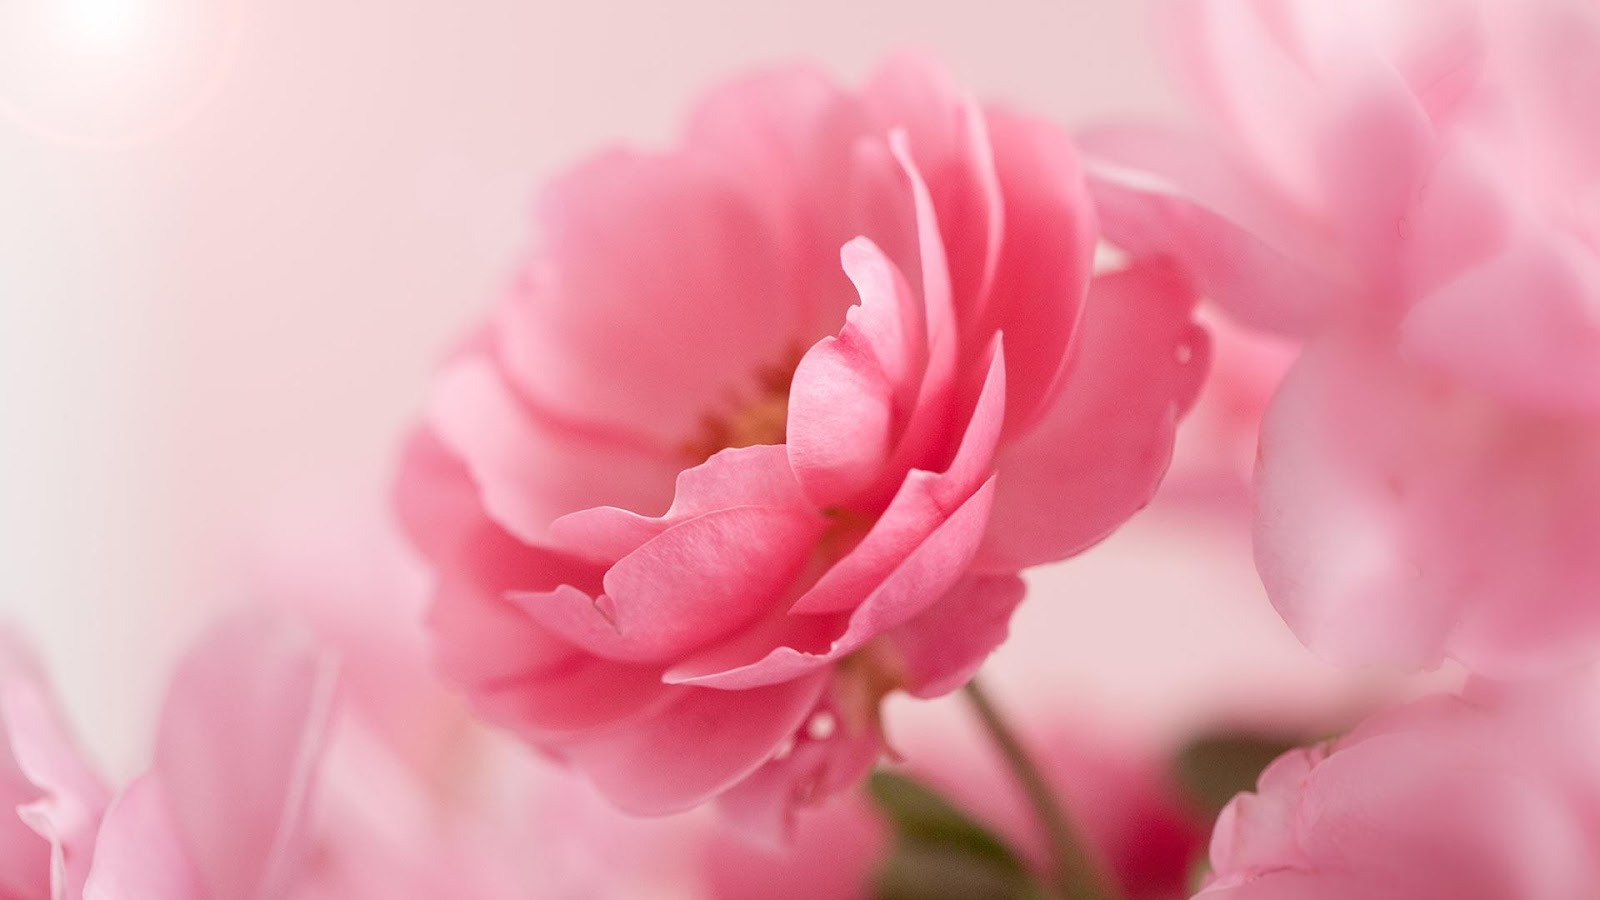 Pink Roses Live Wallpaper   Android Apps on Google Play 1600x900